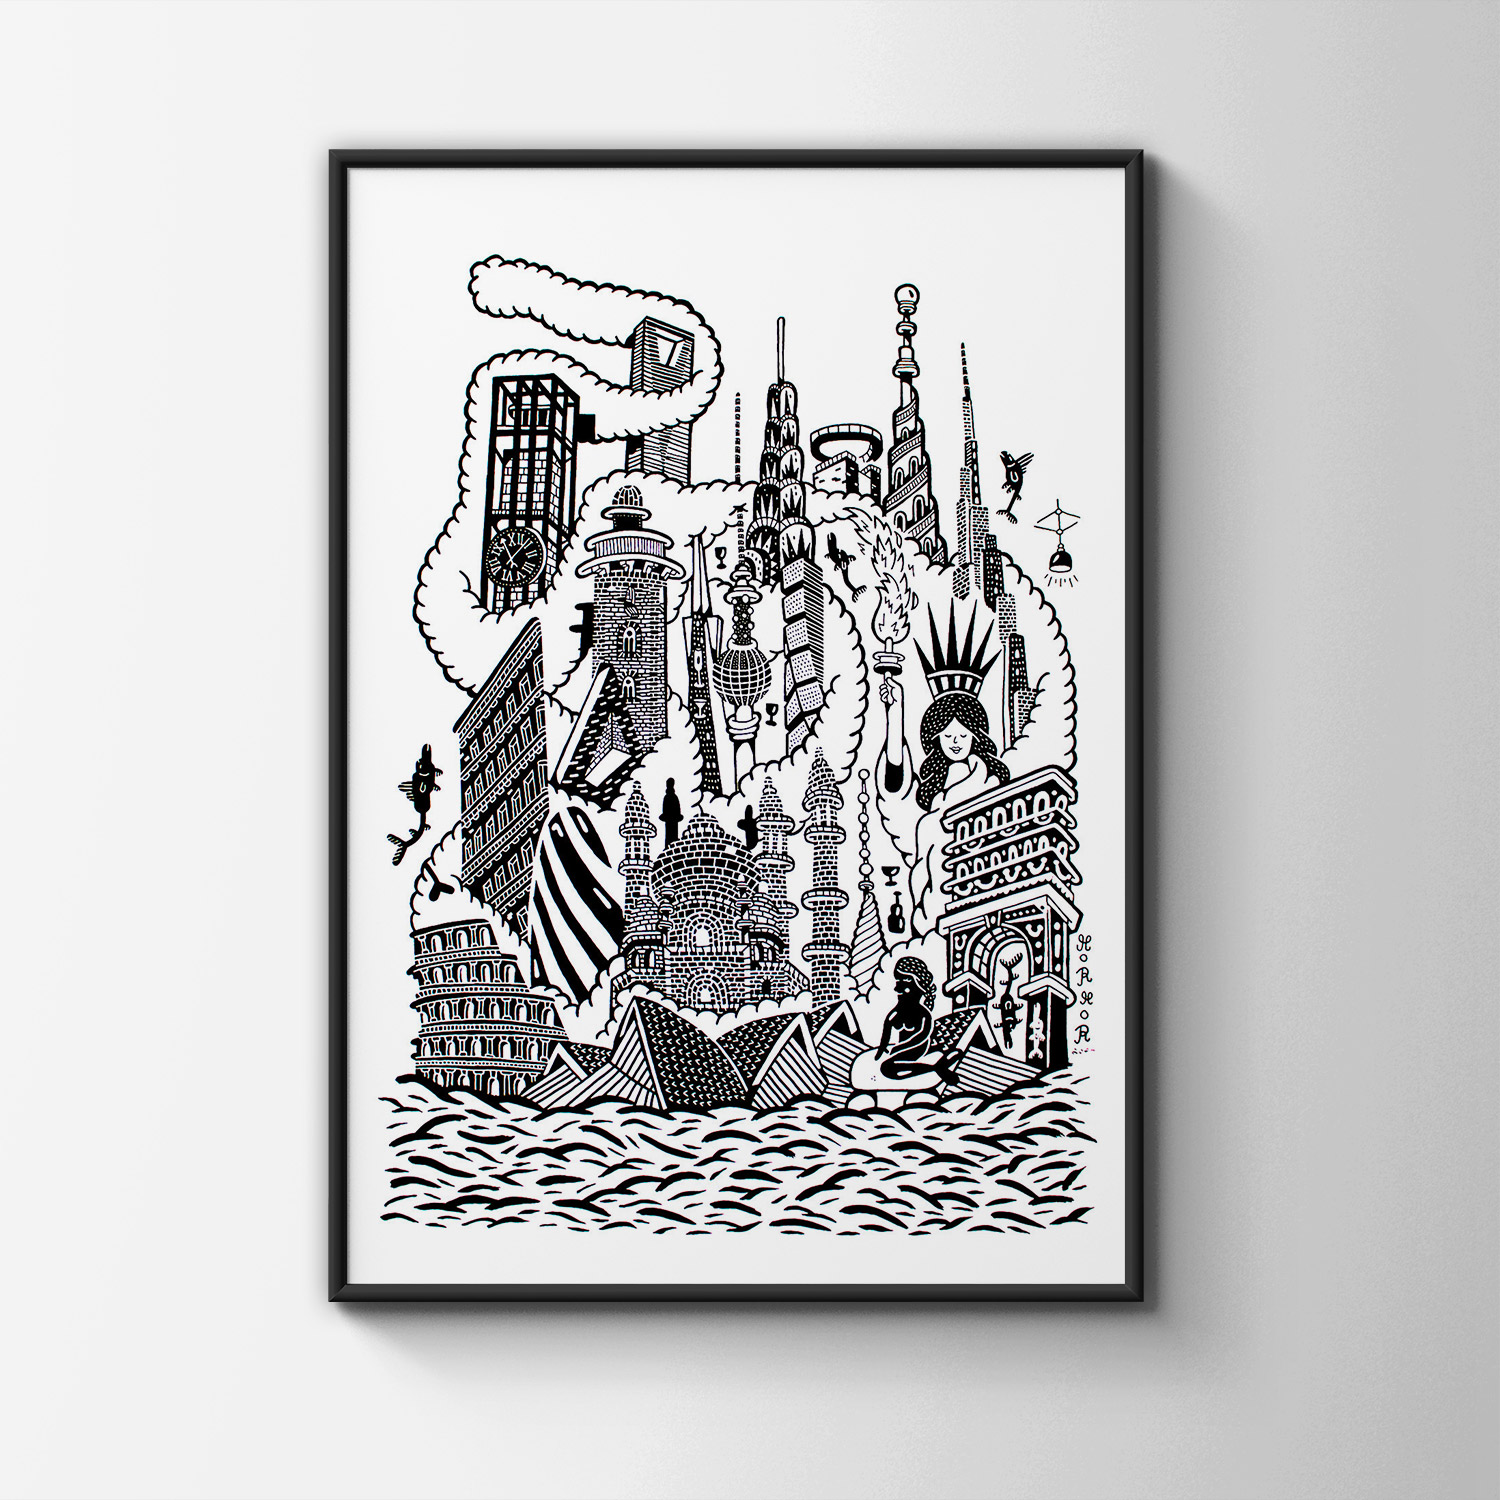 art-prints, gliceé, geometric, monochrome, architecture, humor, oceans, black, white, ink, paper, amusing, architectural, black-and-white, danish, decorative, design, fish, interior, interior-design, nordic, scandinavien, water, Buy original high quality art. Paintings, drawings, limited edition prints & posters by talented artists.